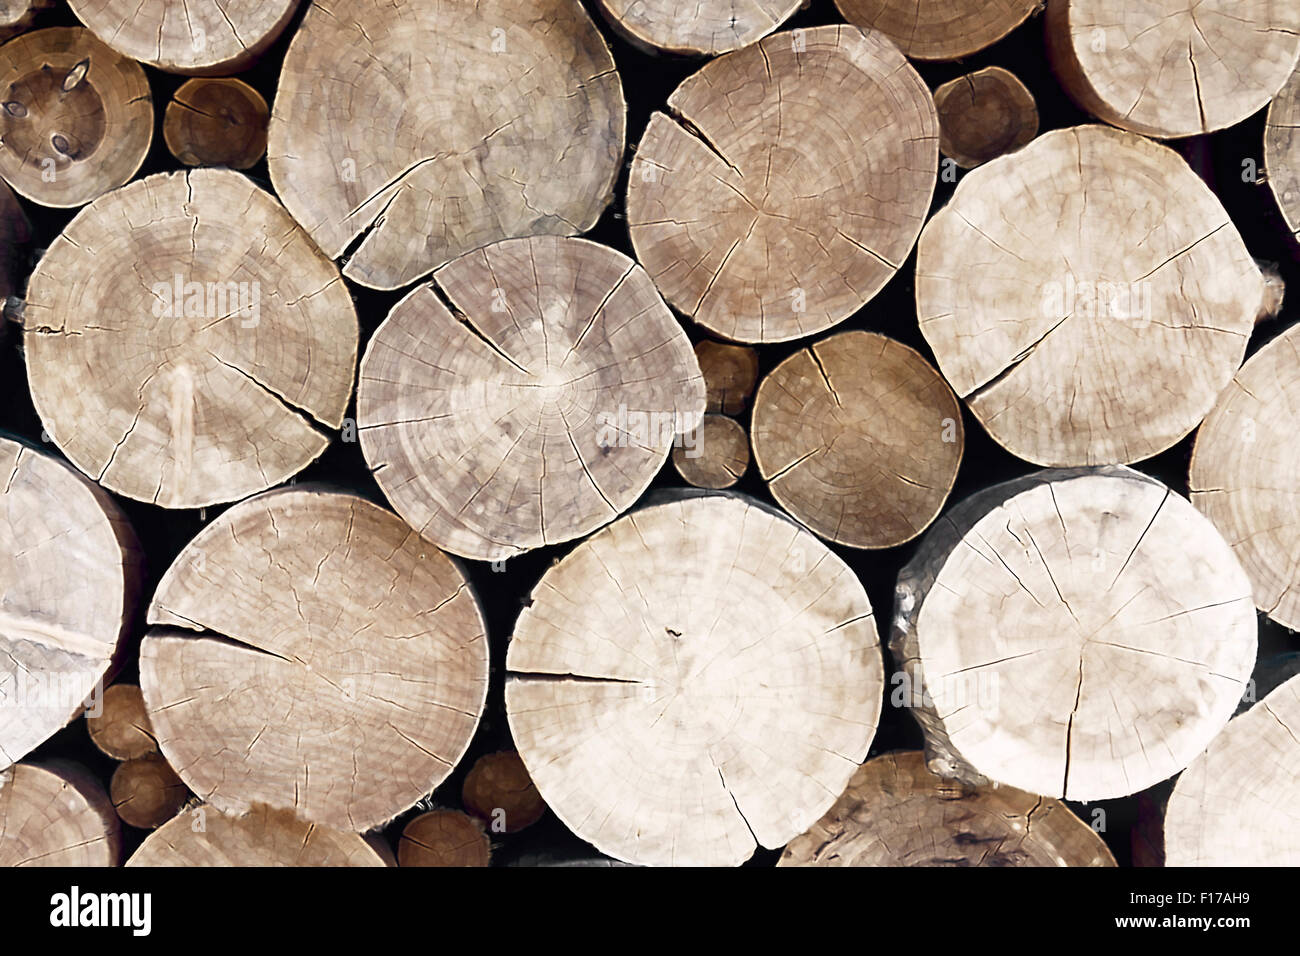 Many large and thick cracked tree beams in a pile - Stock Image